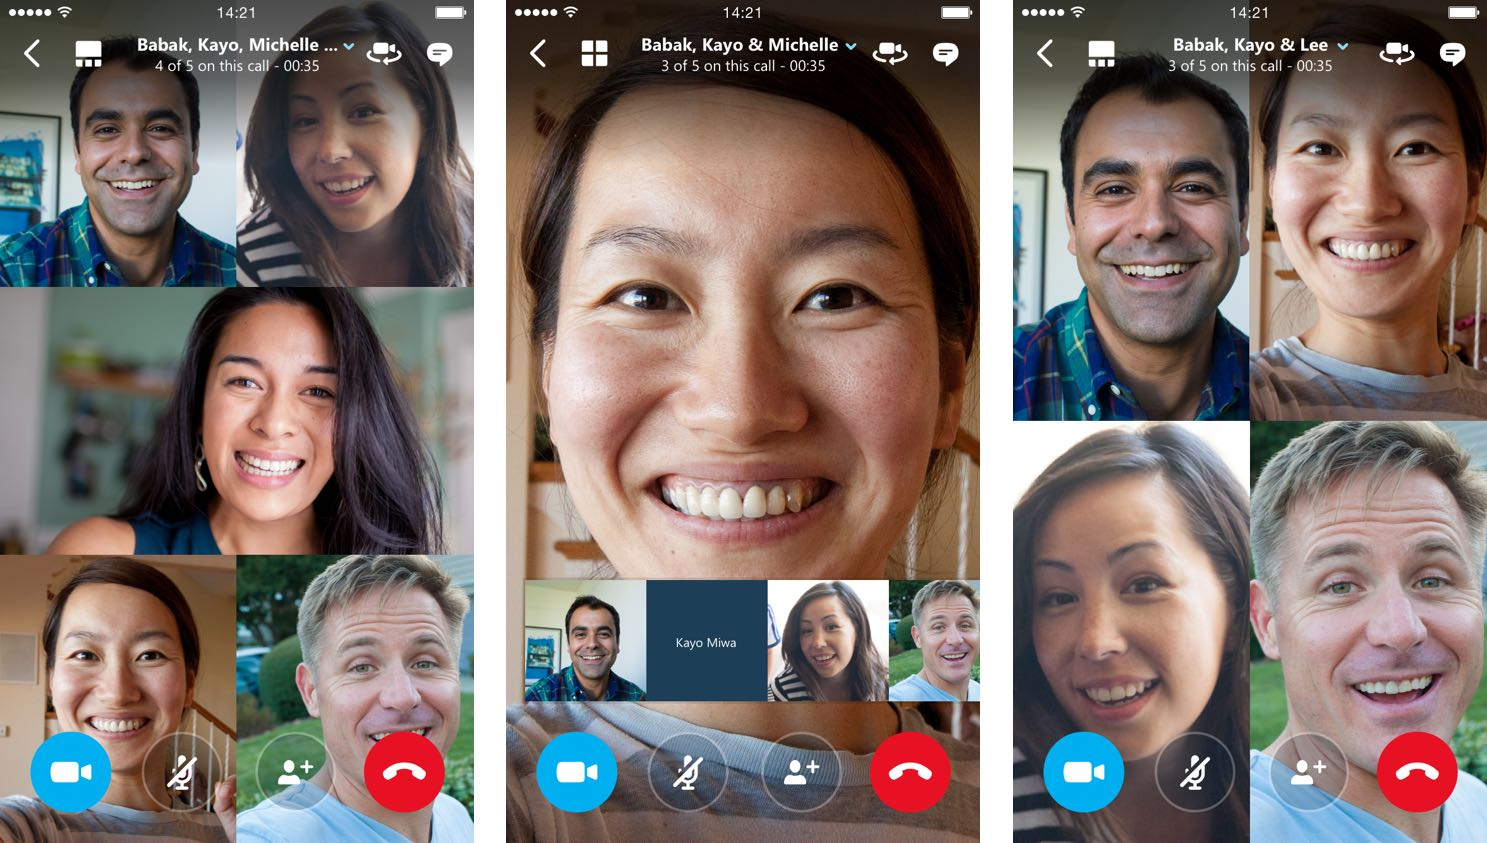 Skype allows video calls with even 25 participants on Android and iOS 1